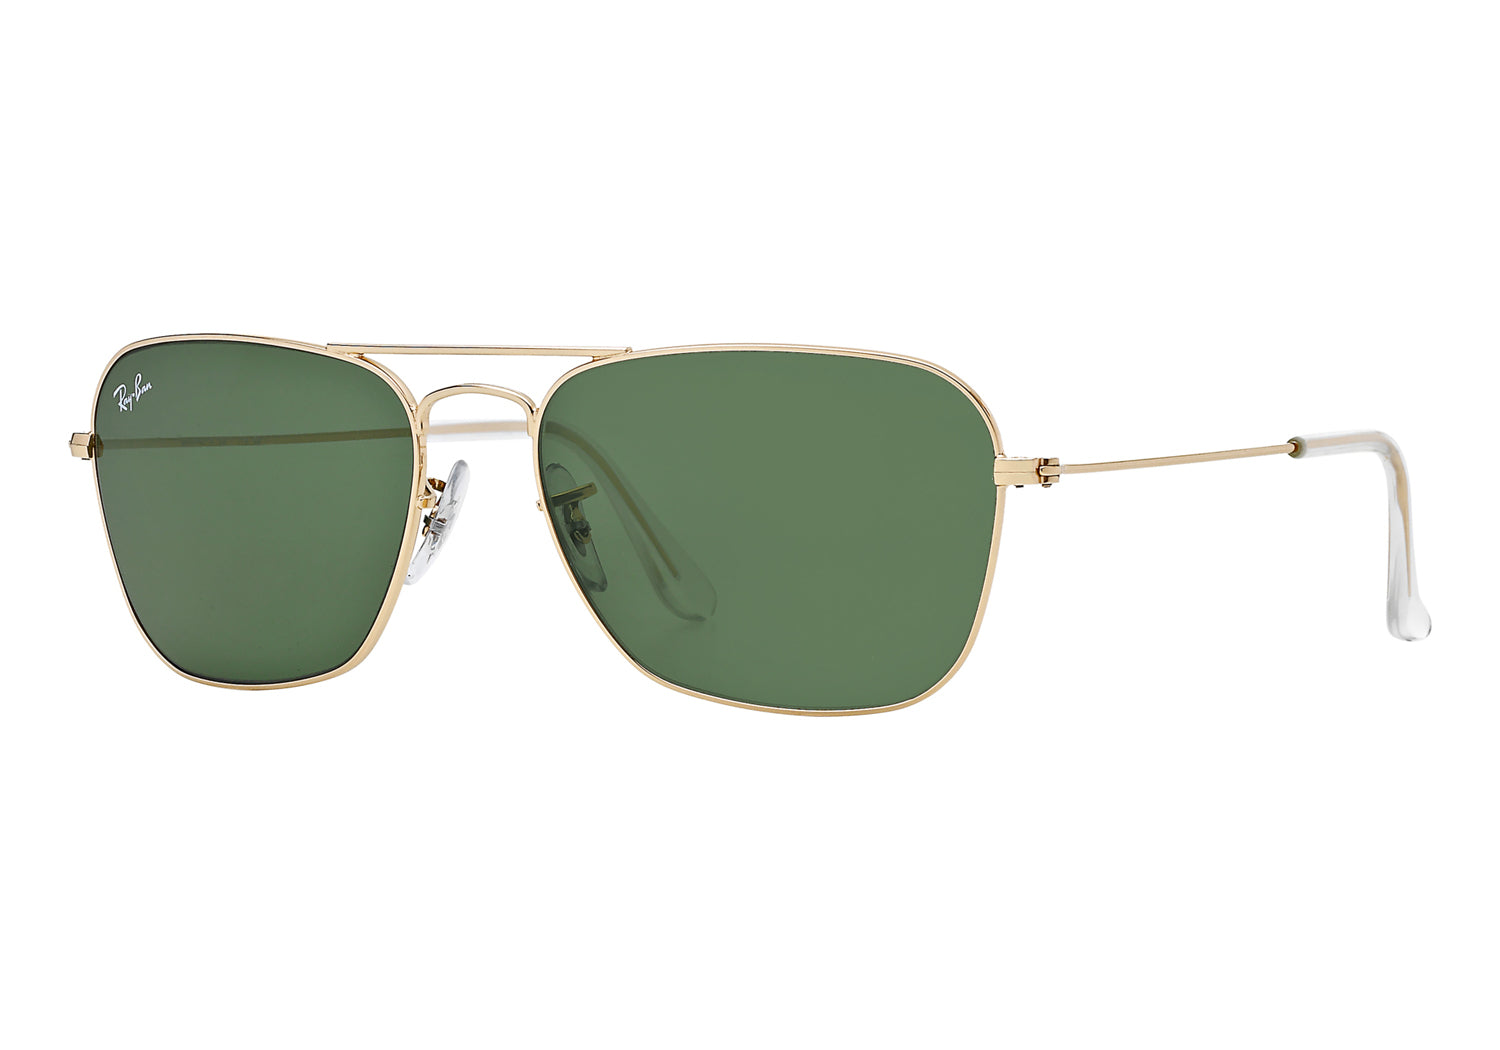 Ray-ban RB3136 Caravan 55mm Prescription Sunglasses